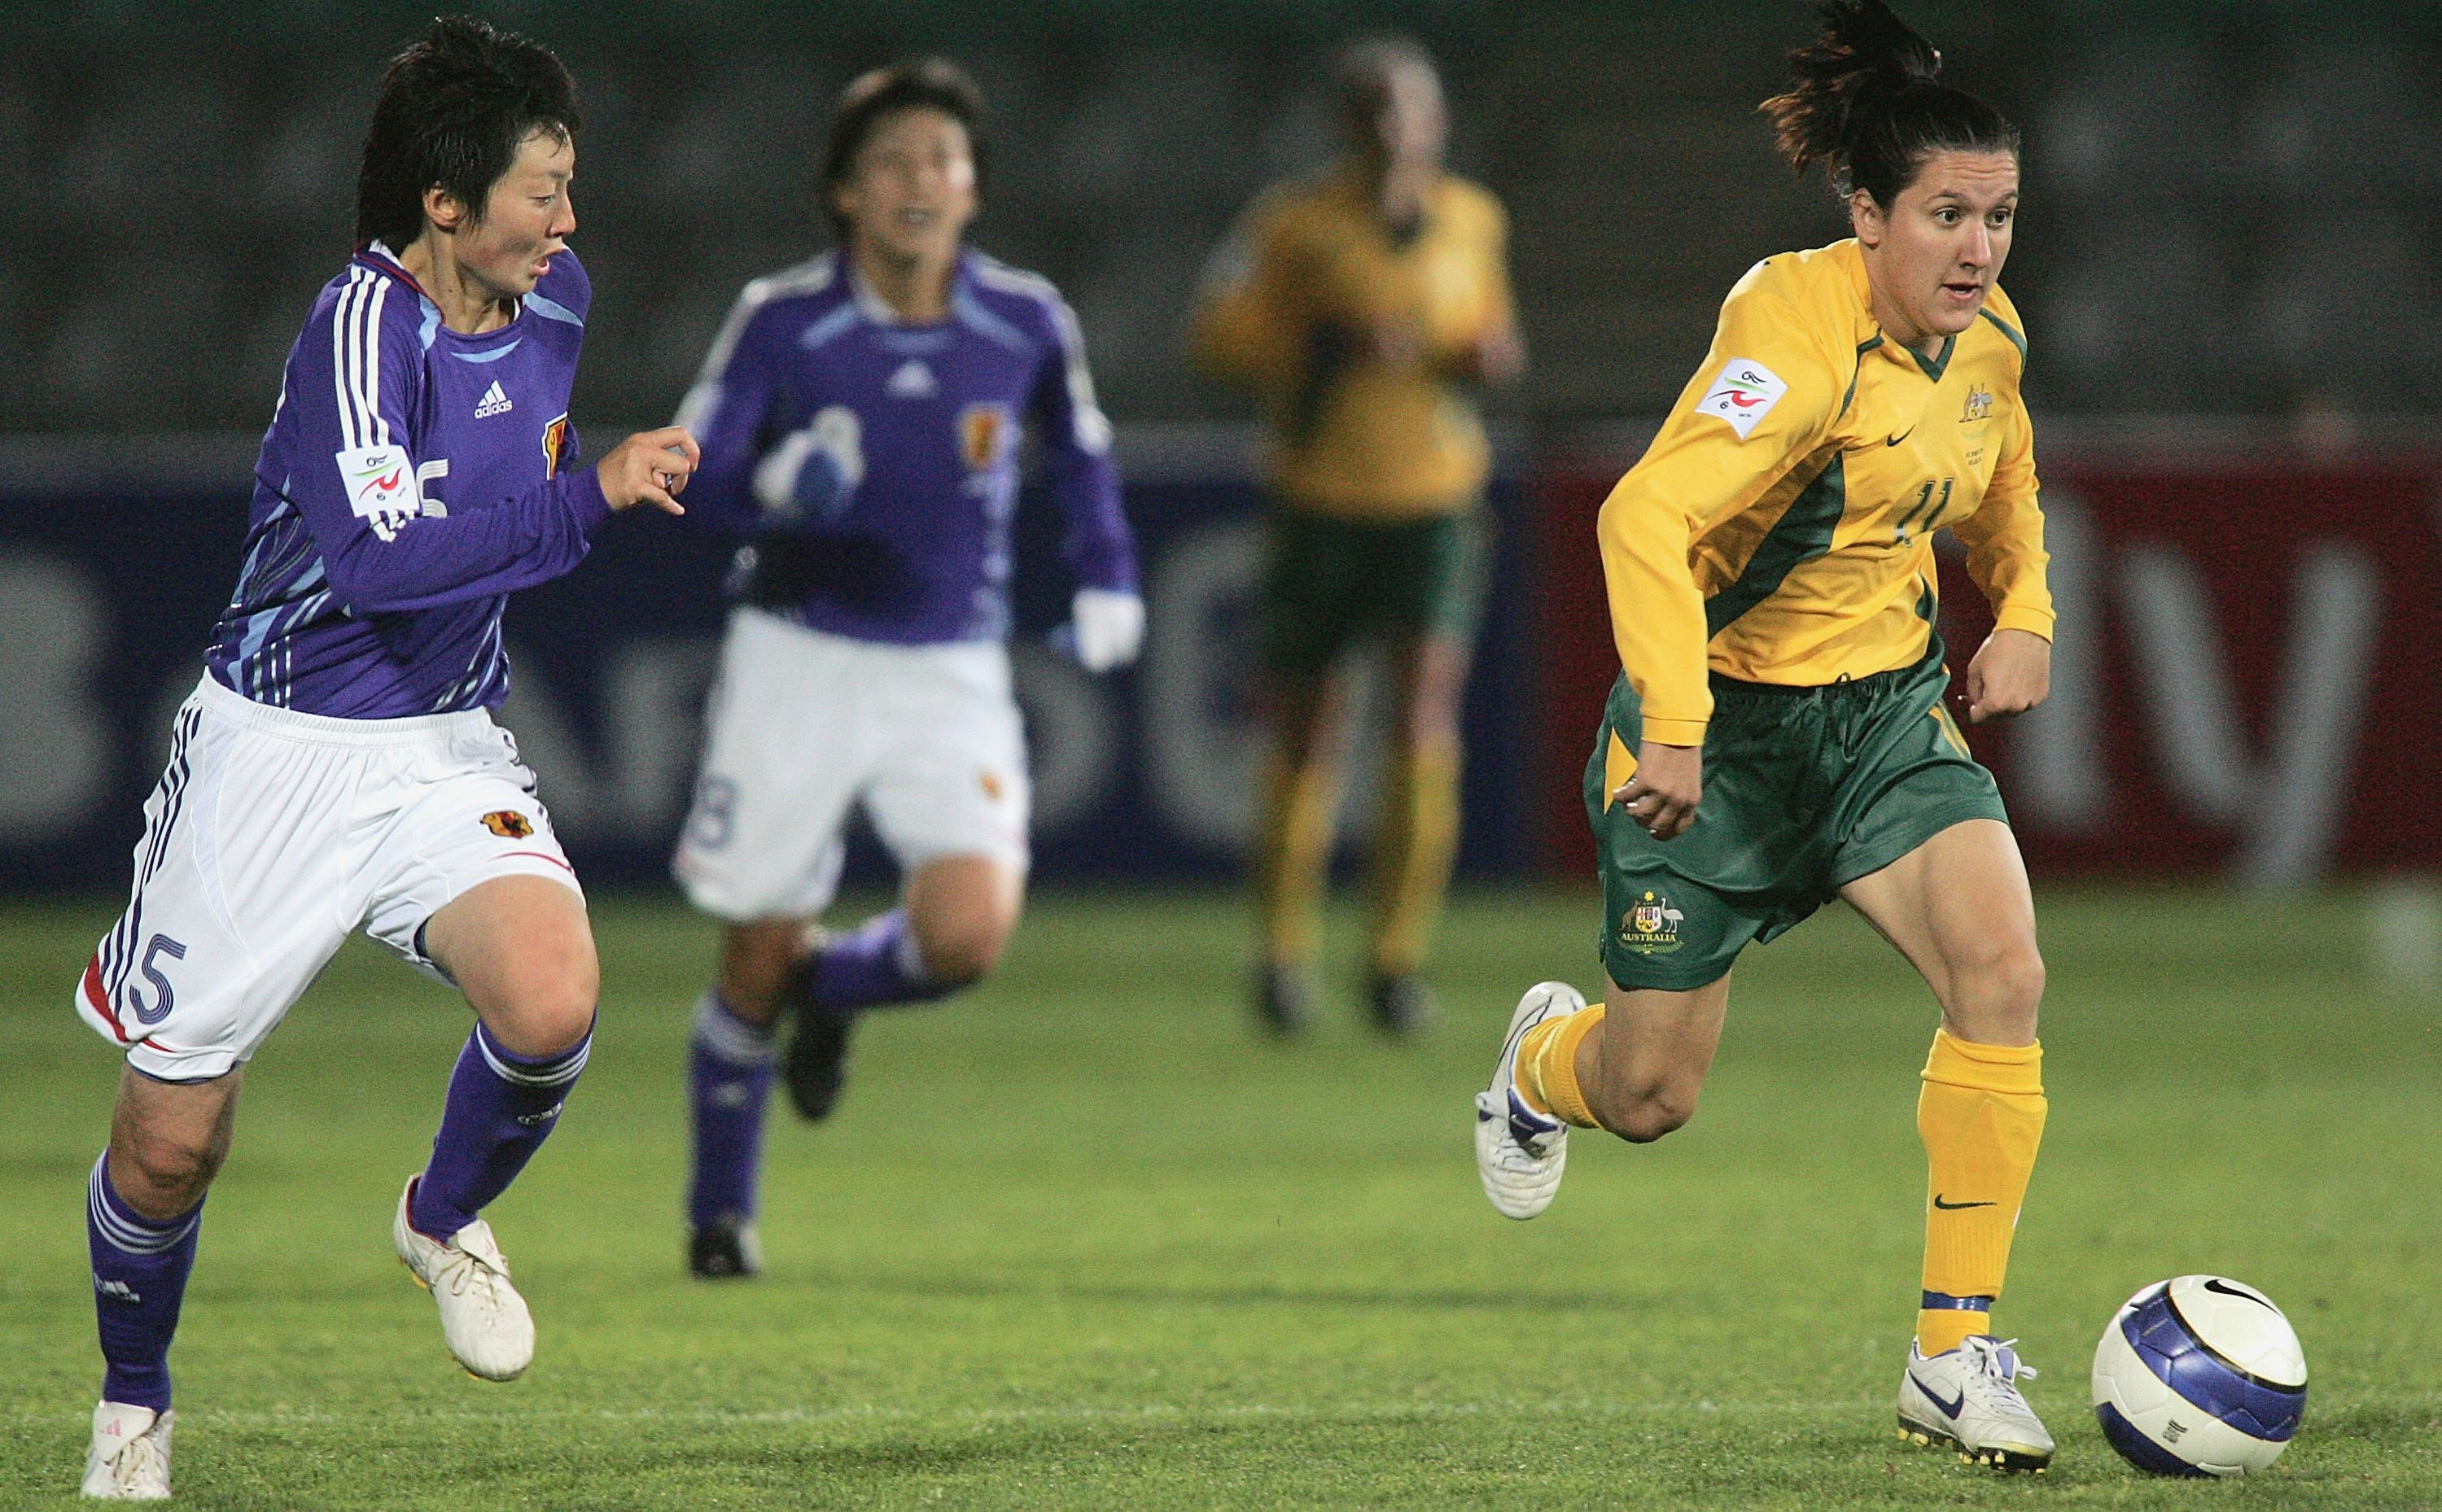 ADELAIDE, AUSTRALIA - JULY 27:  Lisa De Vanna of Australia in action during the AFC Womens Asian Cup Semi Final match between Japan and Australia at Hindmarsh Stadium July 27, 2006 in Adelaide, Australia.  (Photo by James Knowler/Getty Images)